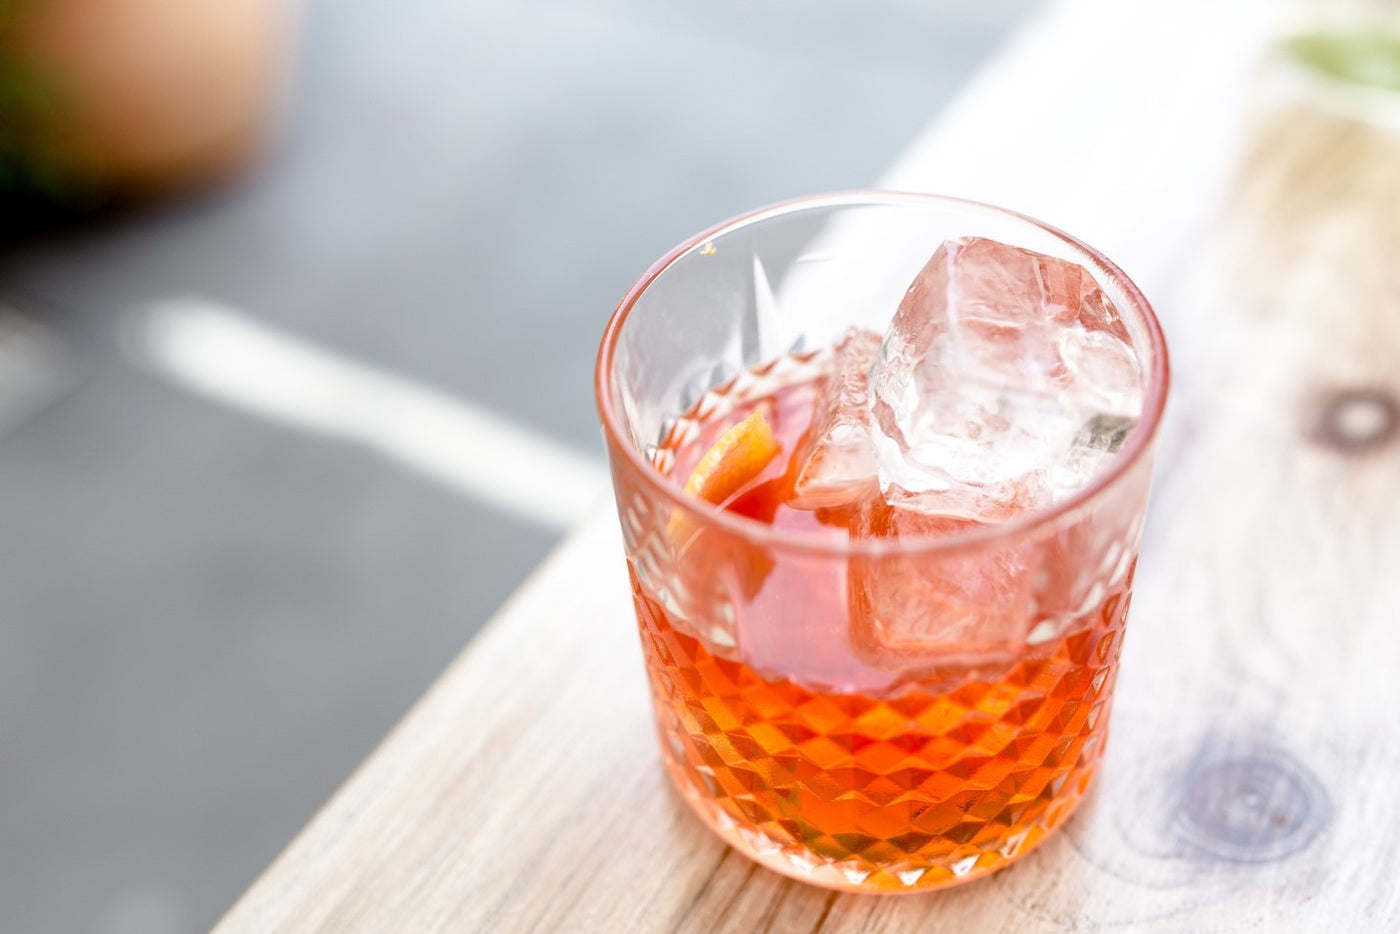 If You're Celebrating Negroni Week in Chicago, Here's Where You Need To Go